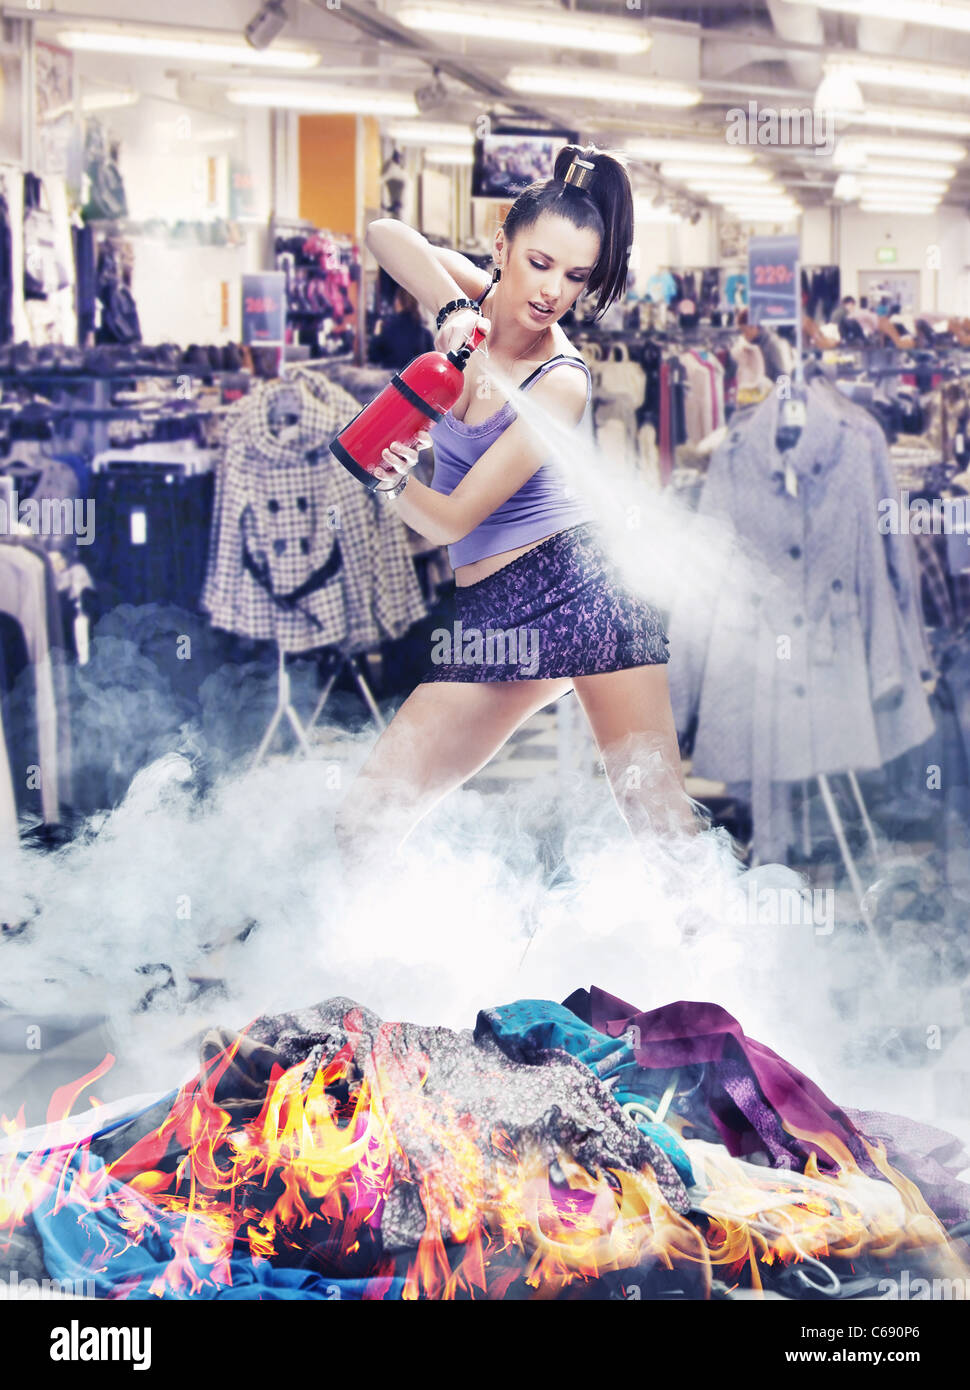 Nice girl irl is extinguishing the fire of clothes - Stock Image